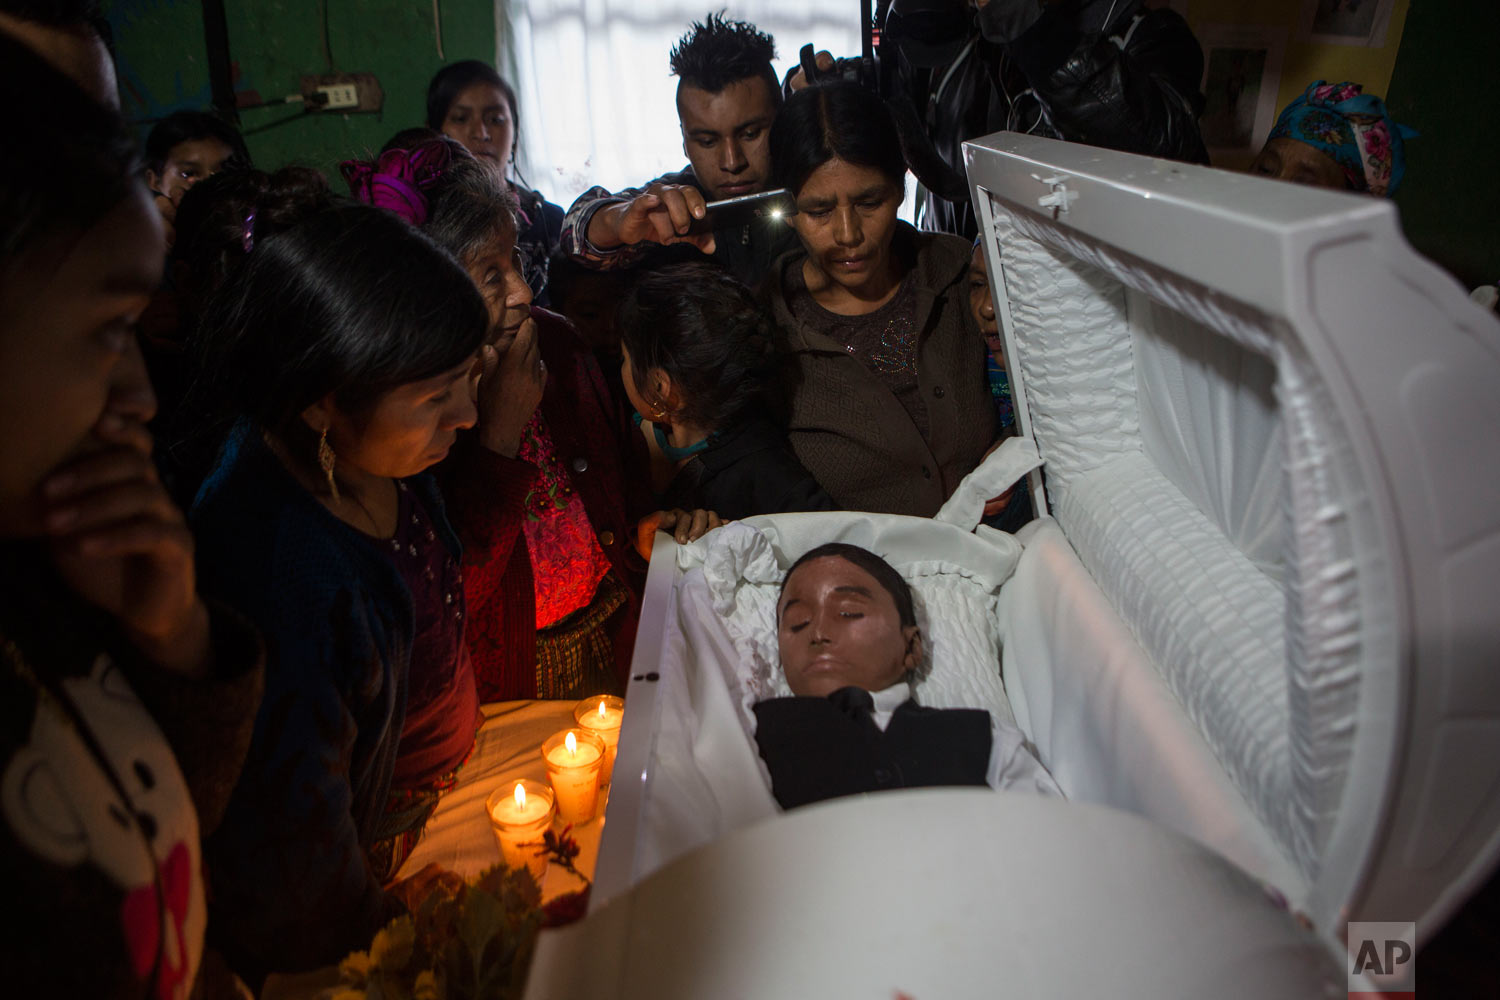 Family members pay their last respects to Felipe Gomez Alonzo, an 8-year-old migrant boy who died in U.S. custody at a New Mexico hospital on Christmas Eve, in Yalambojoch, Guatemala, Jan. 26, 2019. Felipe and his father were apprehended by the U.S. Border Patrol in mid-December. (AP Photo/Oliver de Ros)